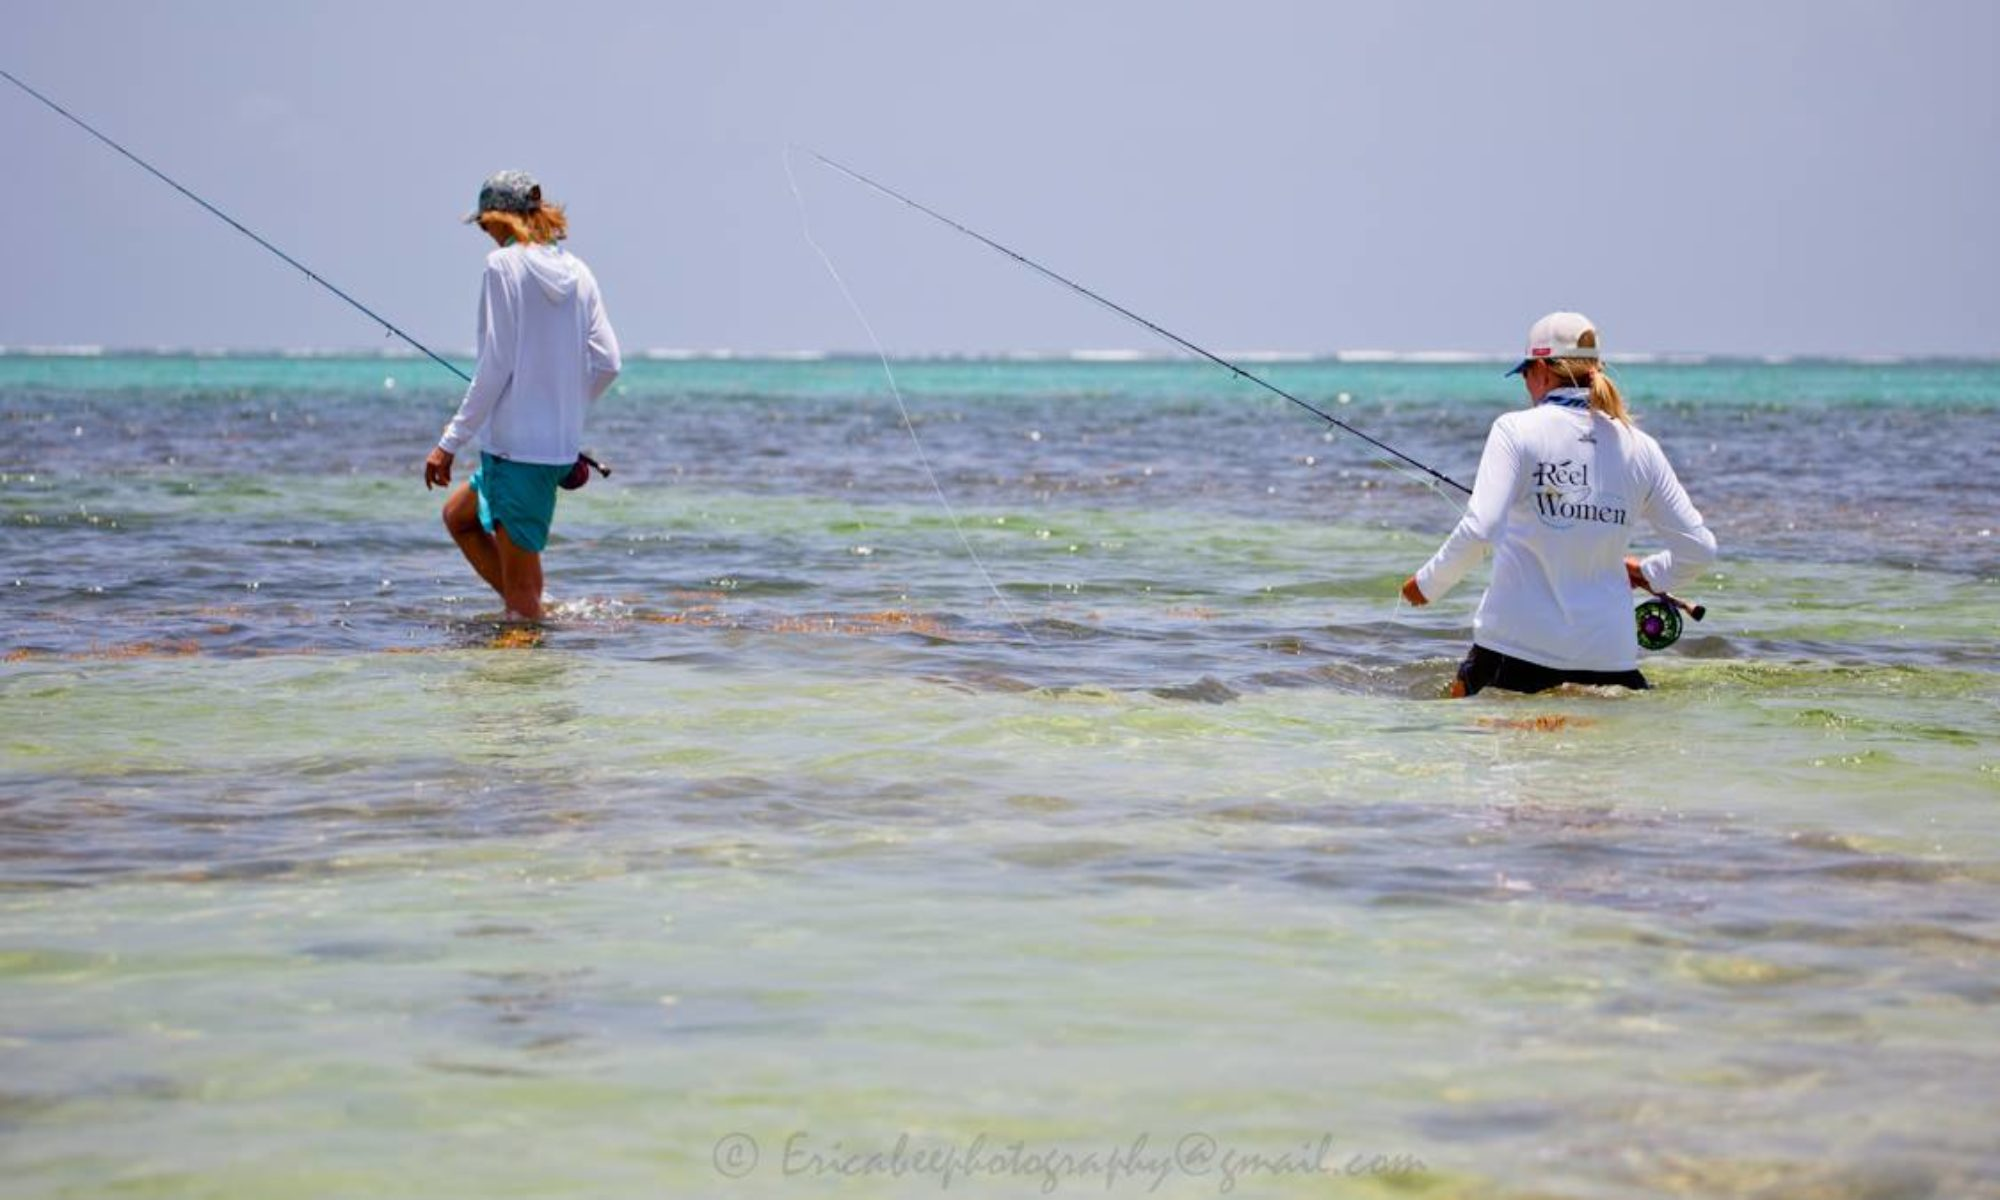 Fly Fishing Adventure Travel, Instruction & Guiding